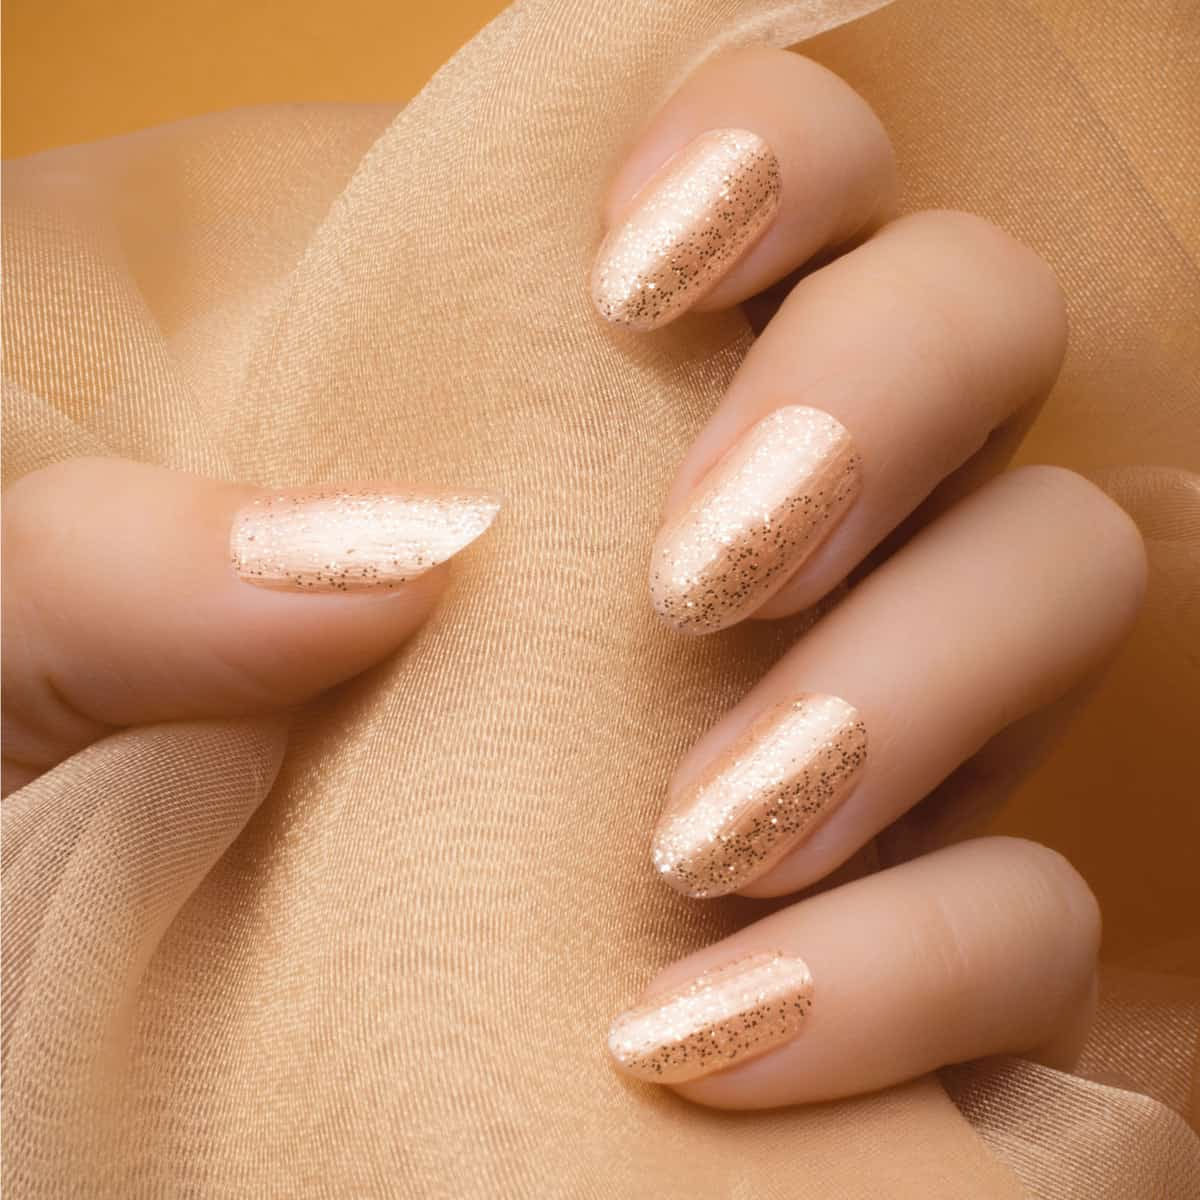 Female hand with glittered beige nails holding a beige textile